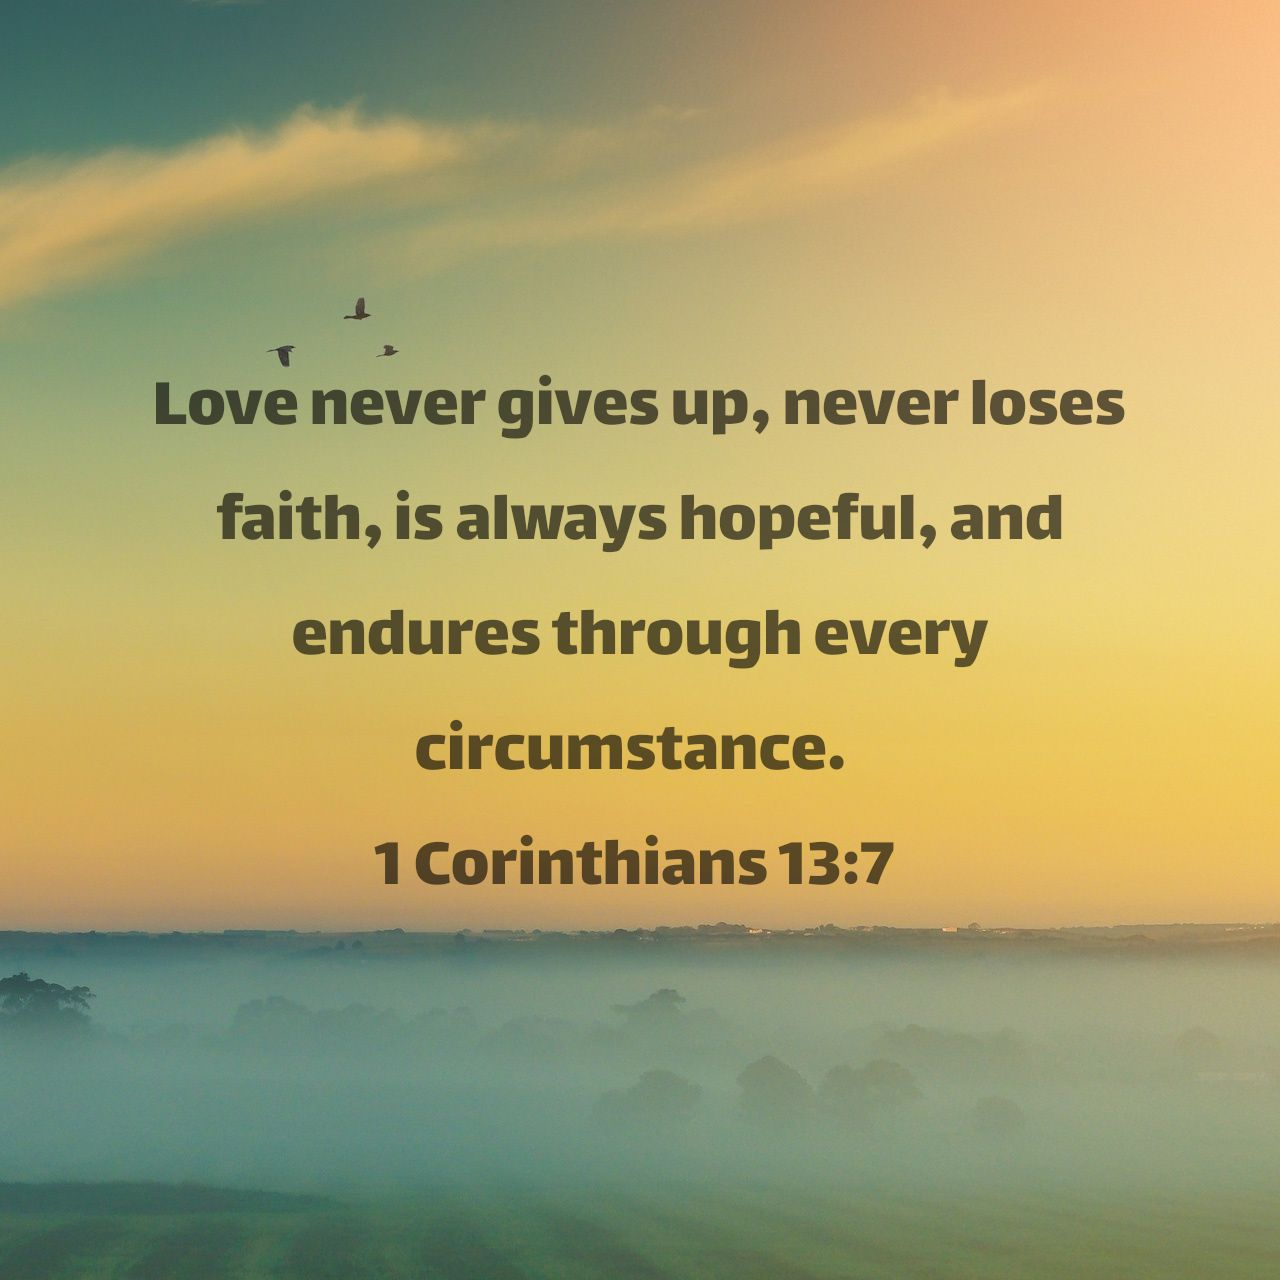 Love never gives up, never loses faith, is always hopeful, and endures through every circumstance. - 1 Corinthians 13:7 NLT